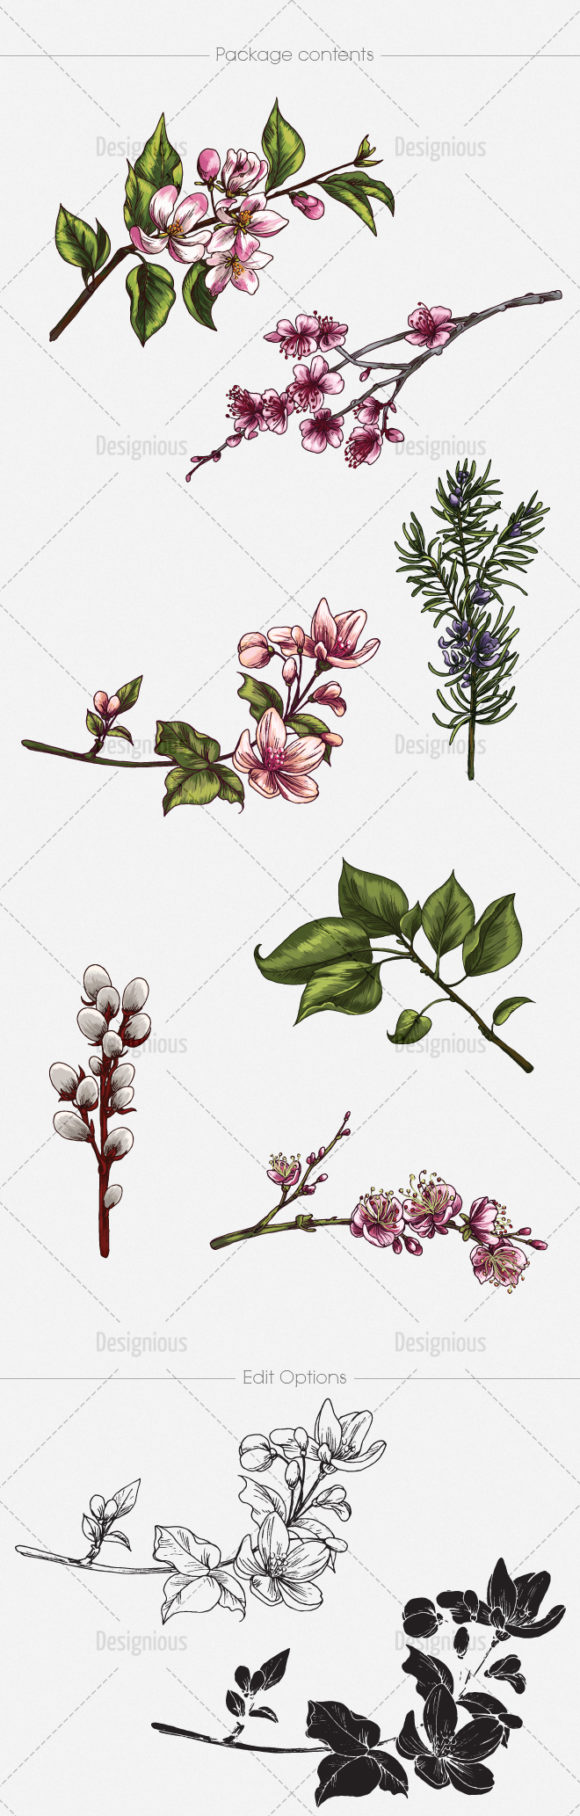 Blossomed Branches Vector Pack 1 products designious vector blossomed branches 1 large